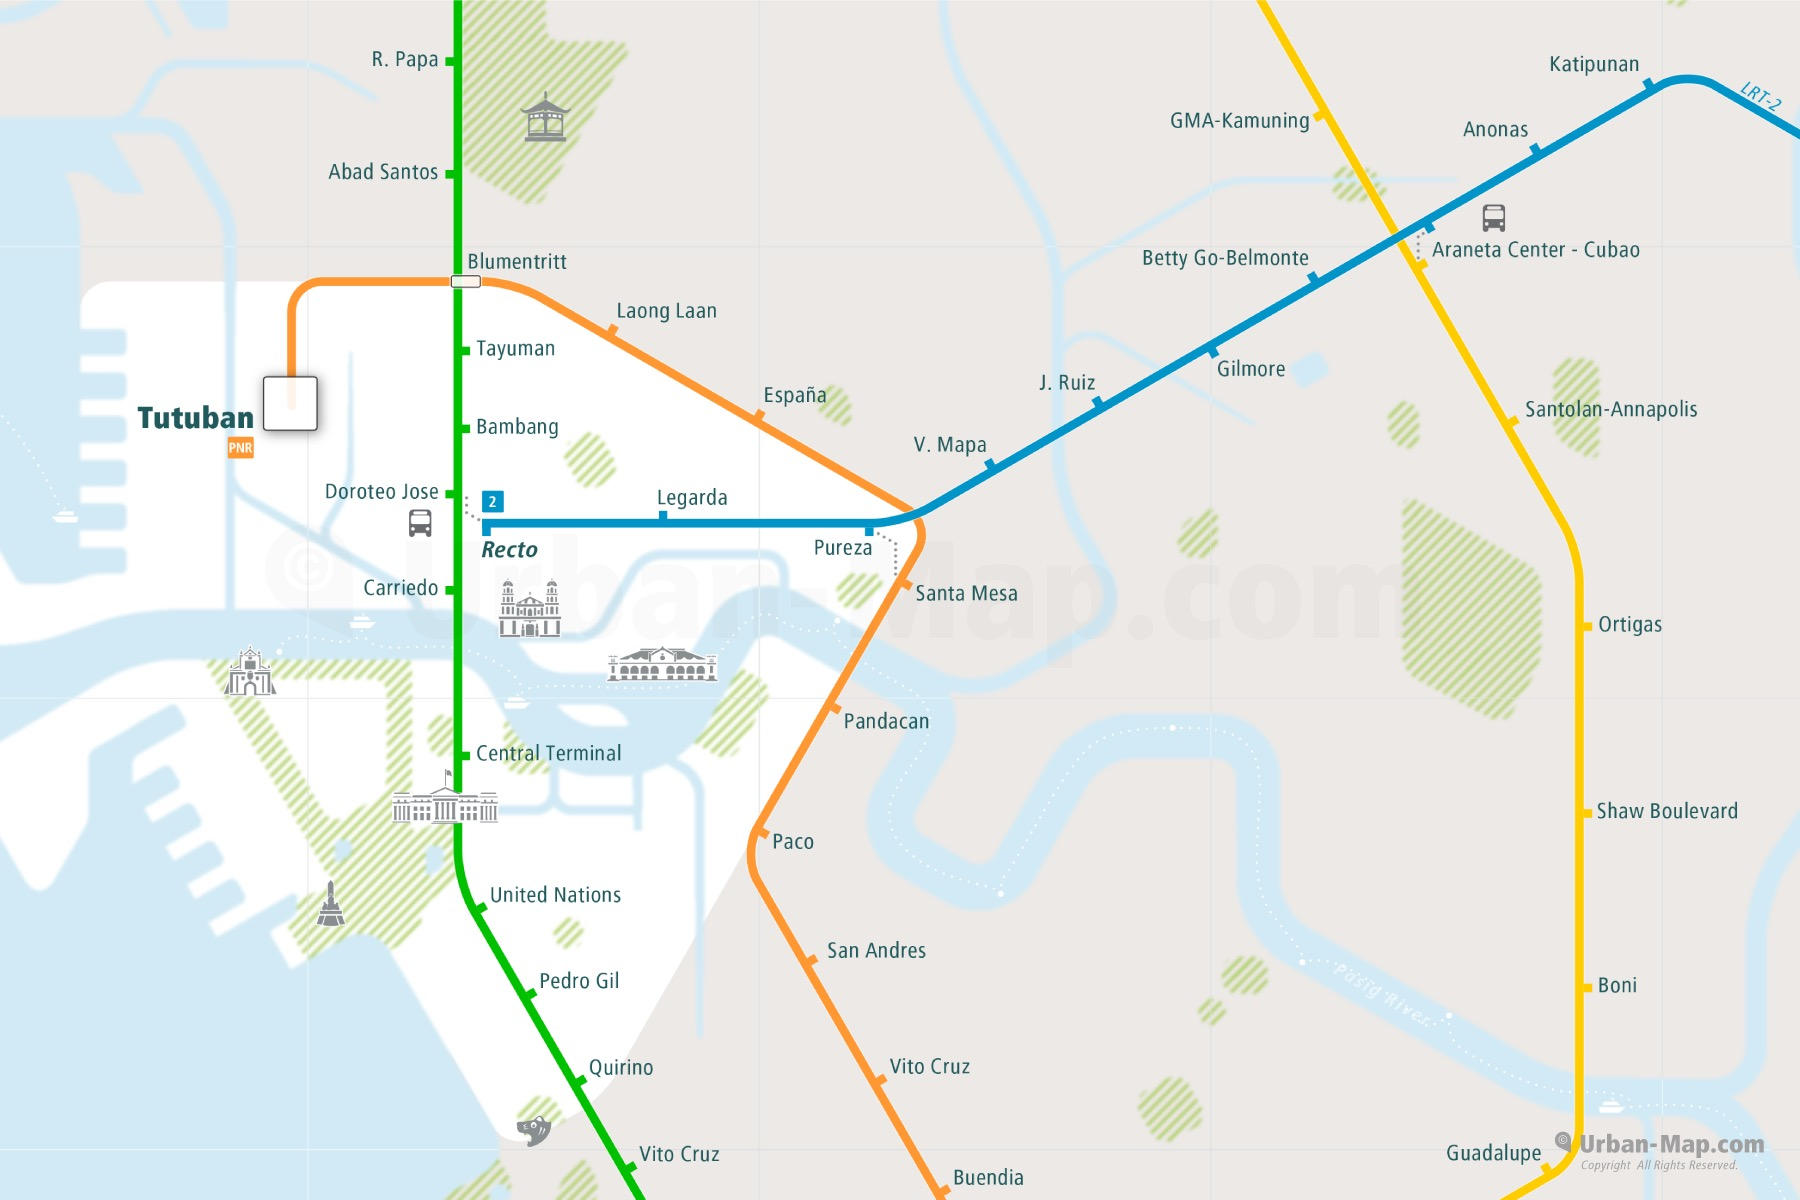 Manila City Rail Map shows the train and public transportation routes of metro - Close-Up